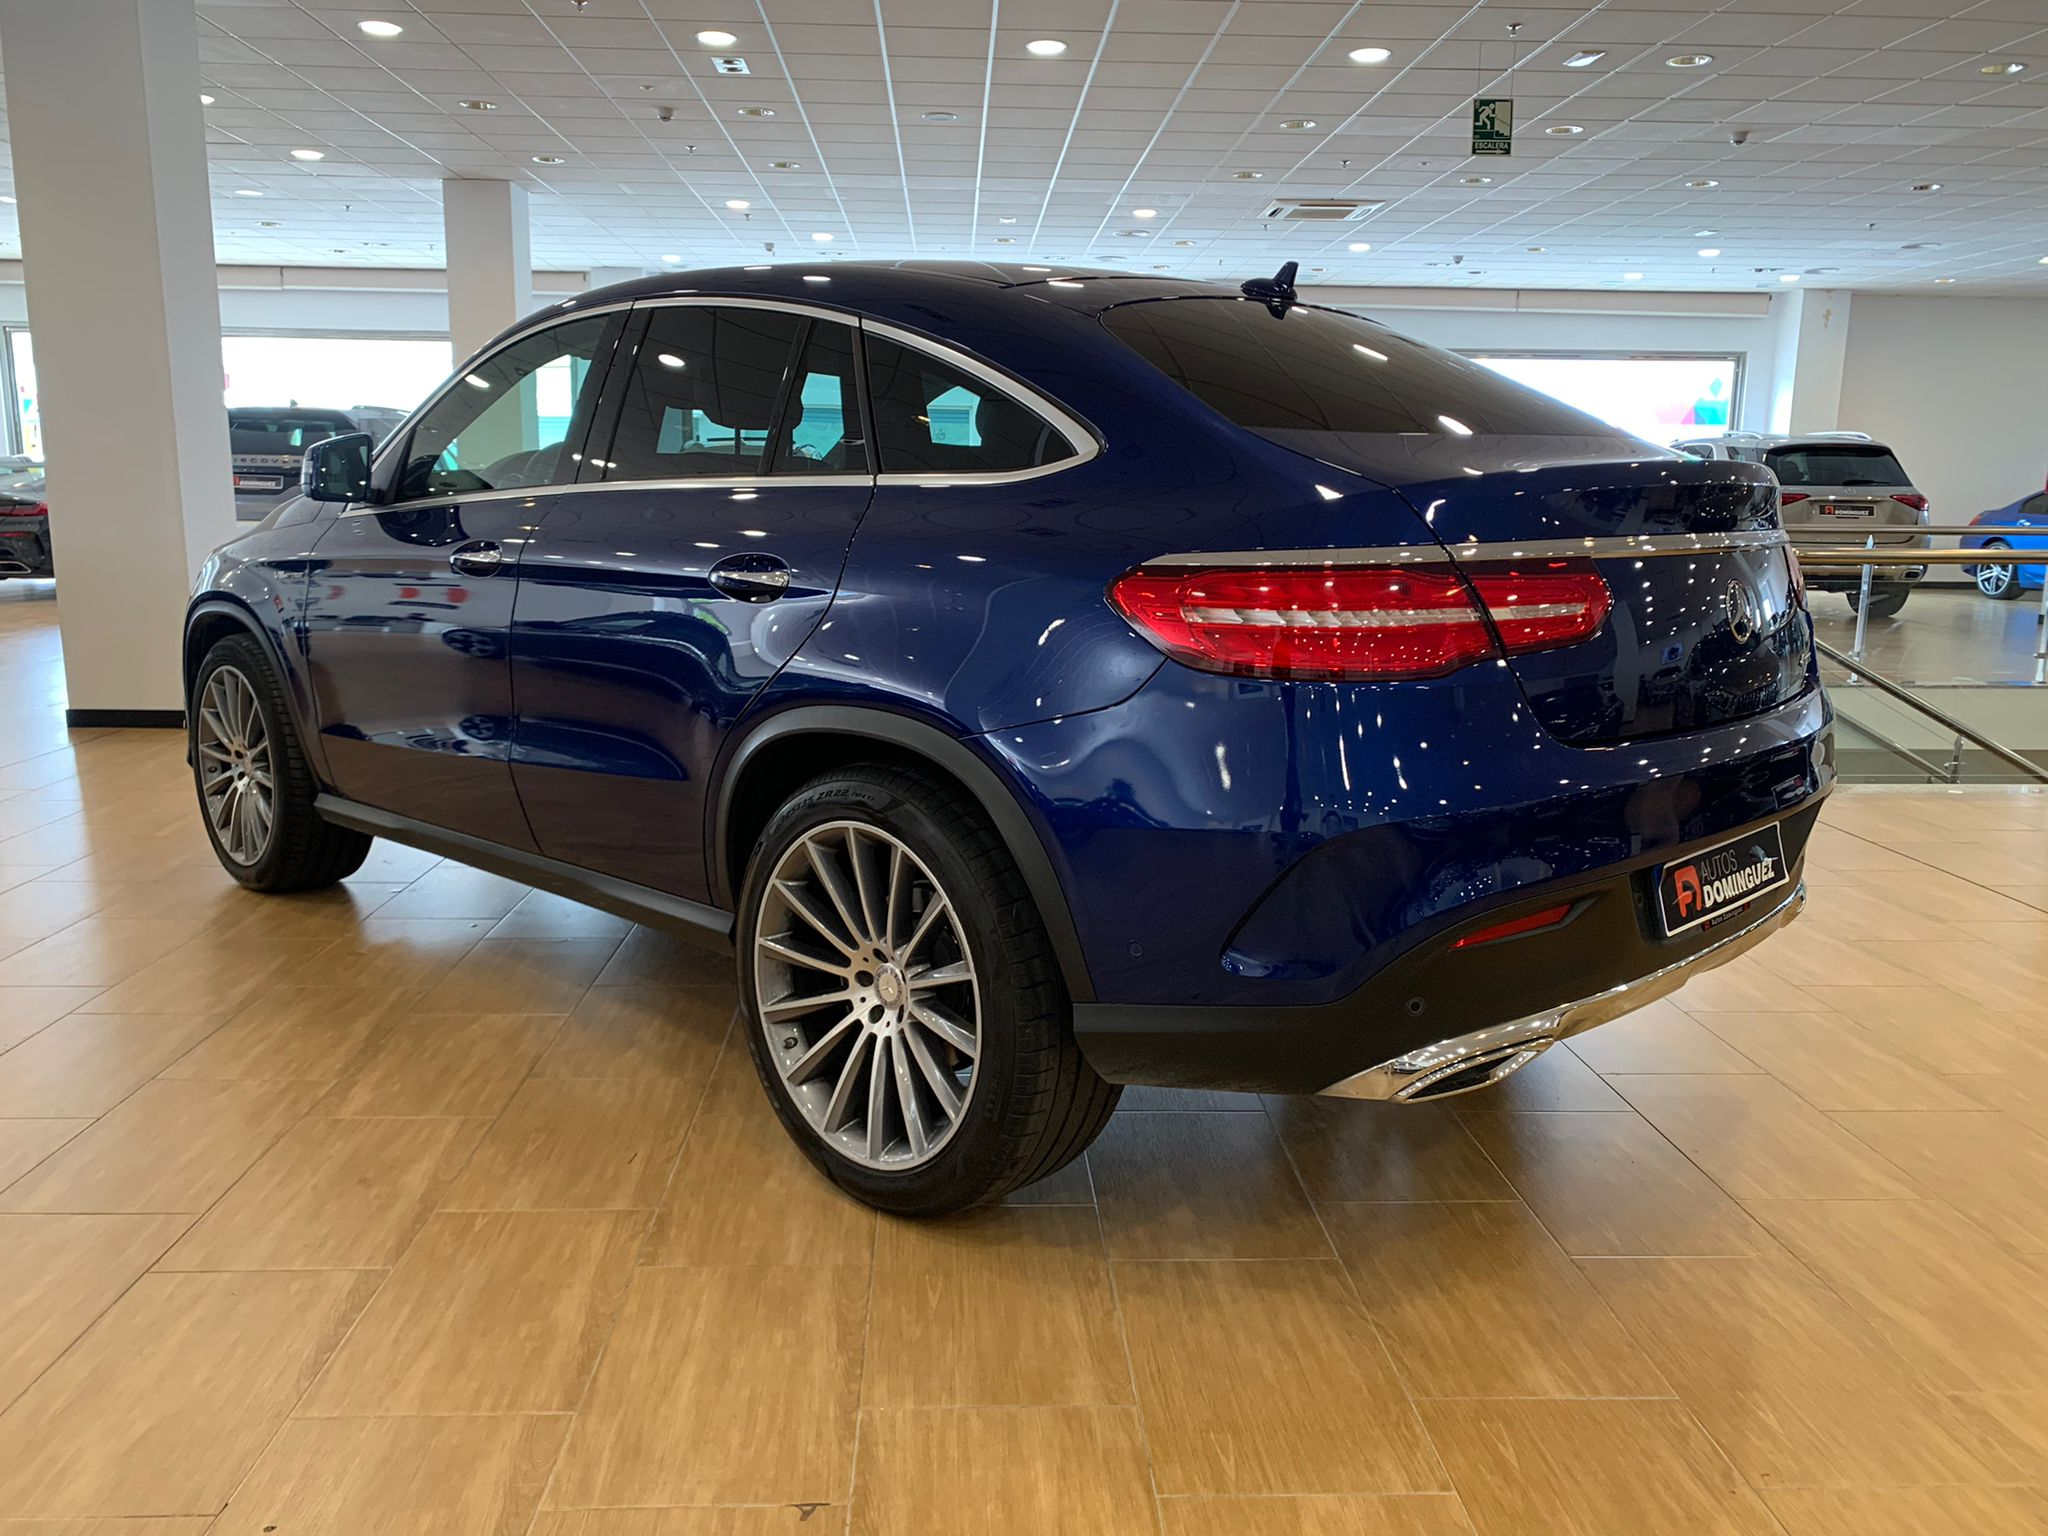 MERCEDES GLE COUPE 350D 4 MATIC PACK AMG 6